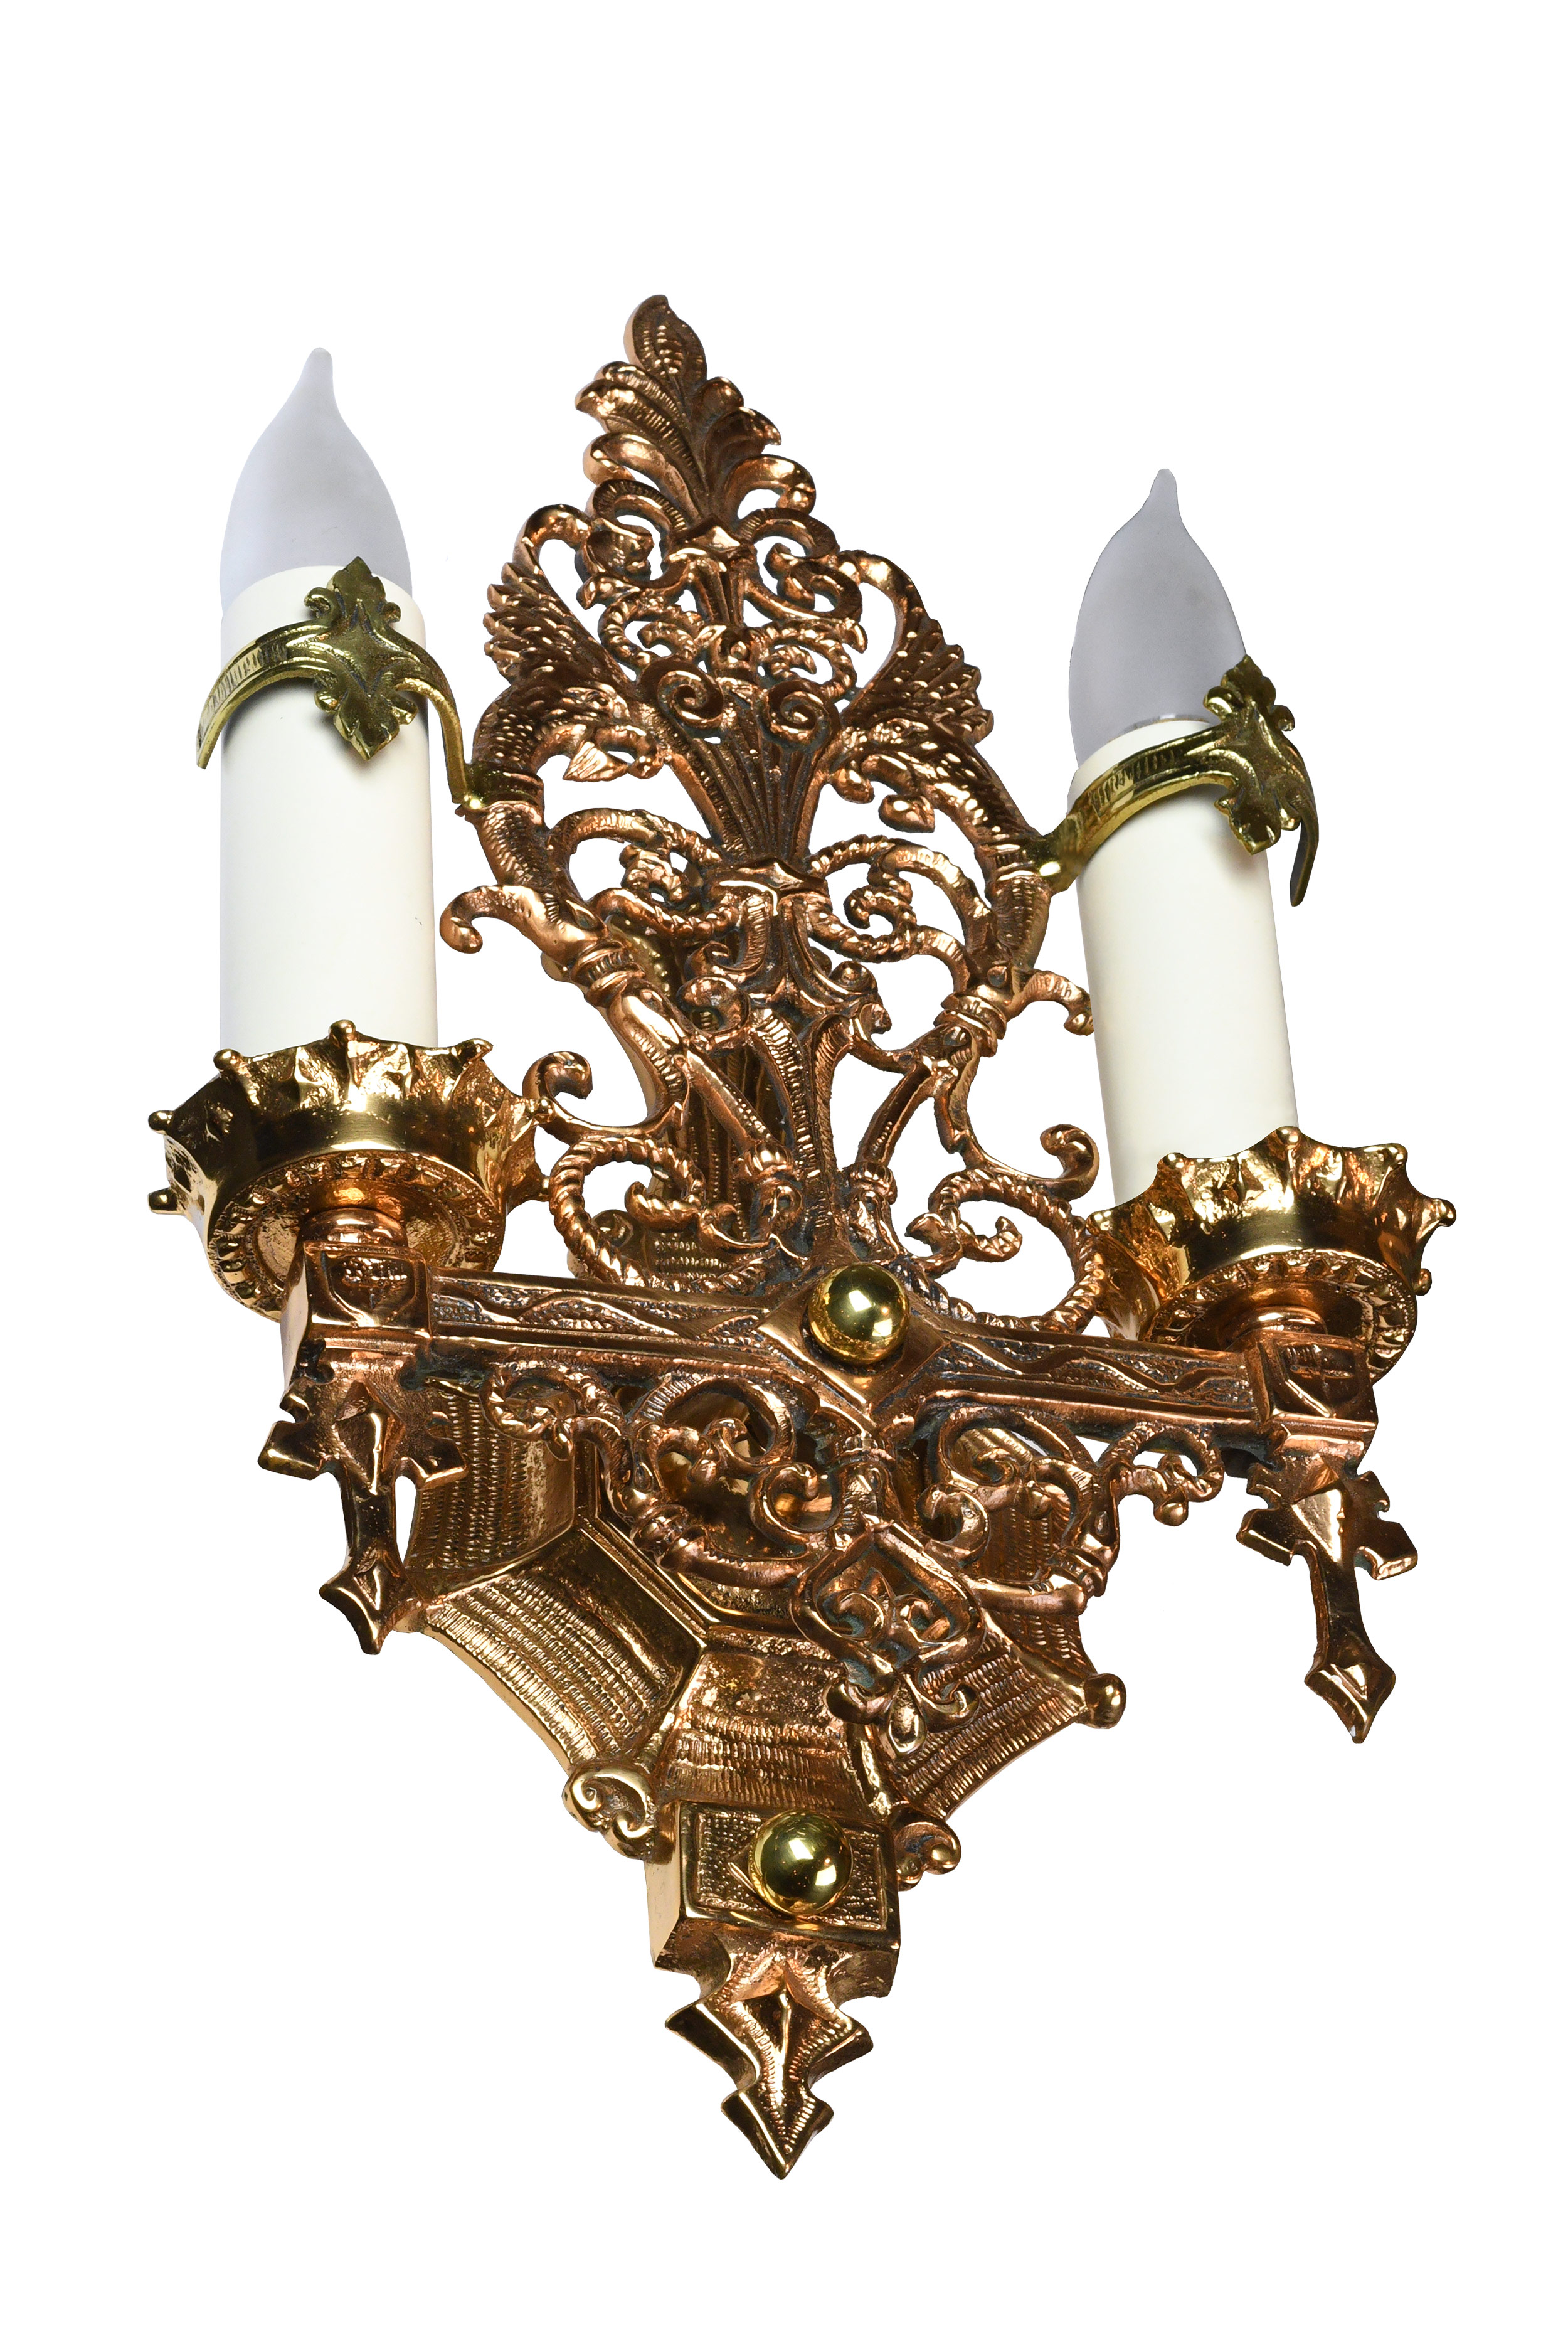 47609-polished-brass-two-candle-sconce-low-angle-full-view.jpg